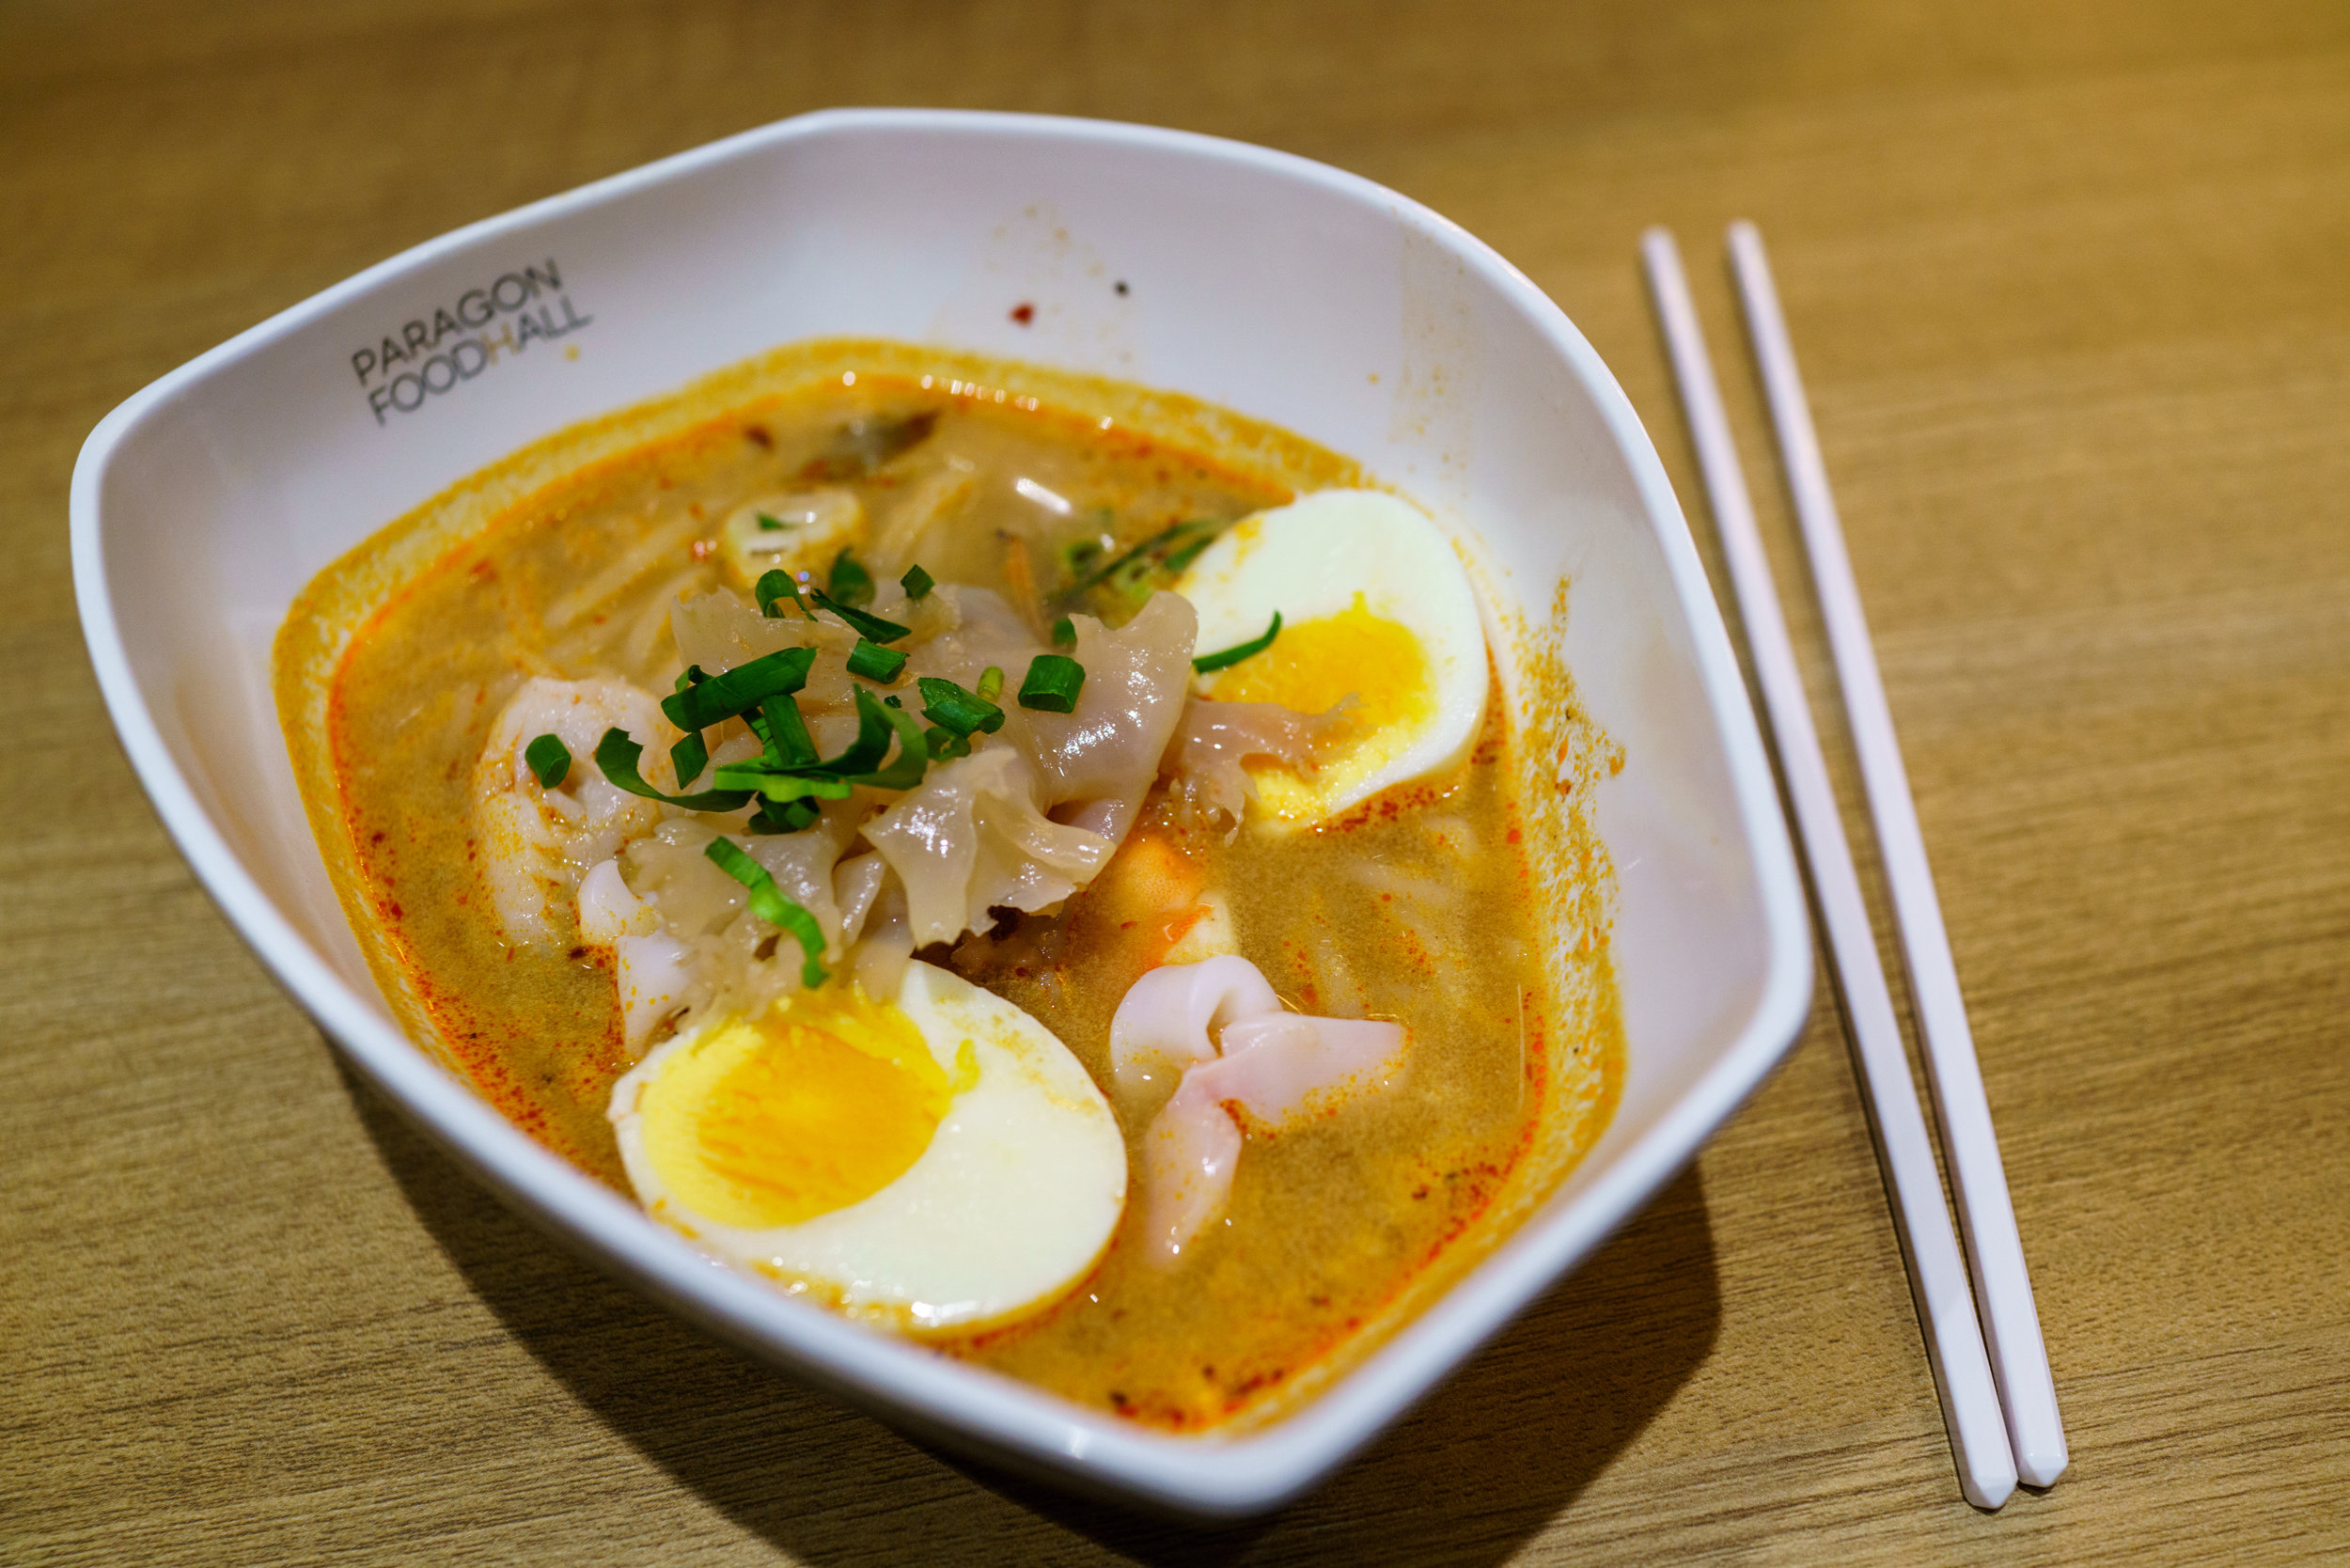 A slightly overpriced, but satisfying, bowl of  tom yum talay at Siam Paragon Food Court